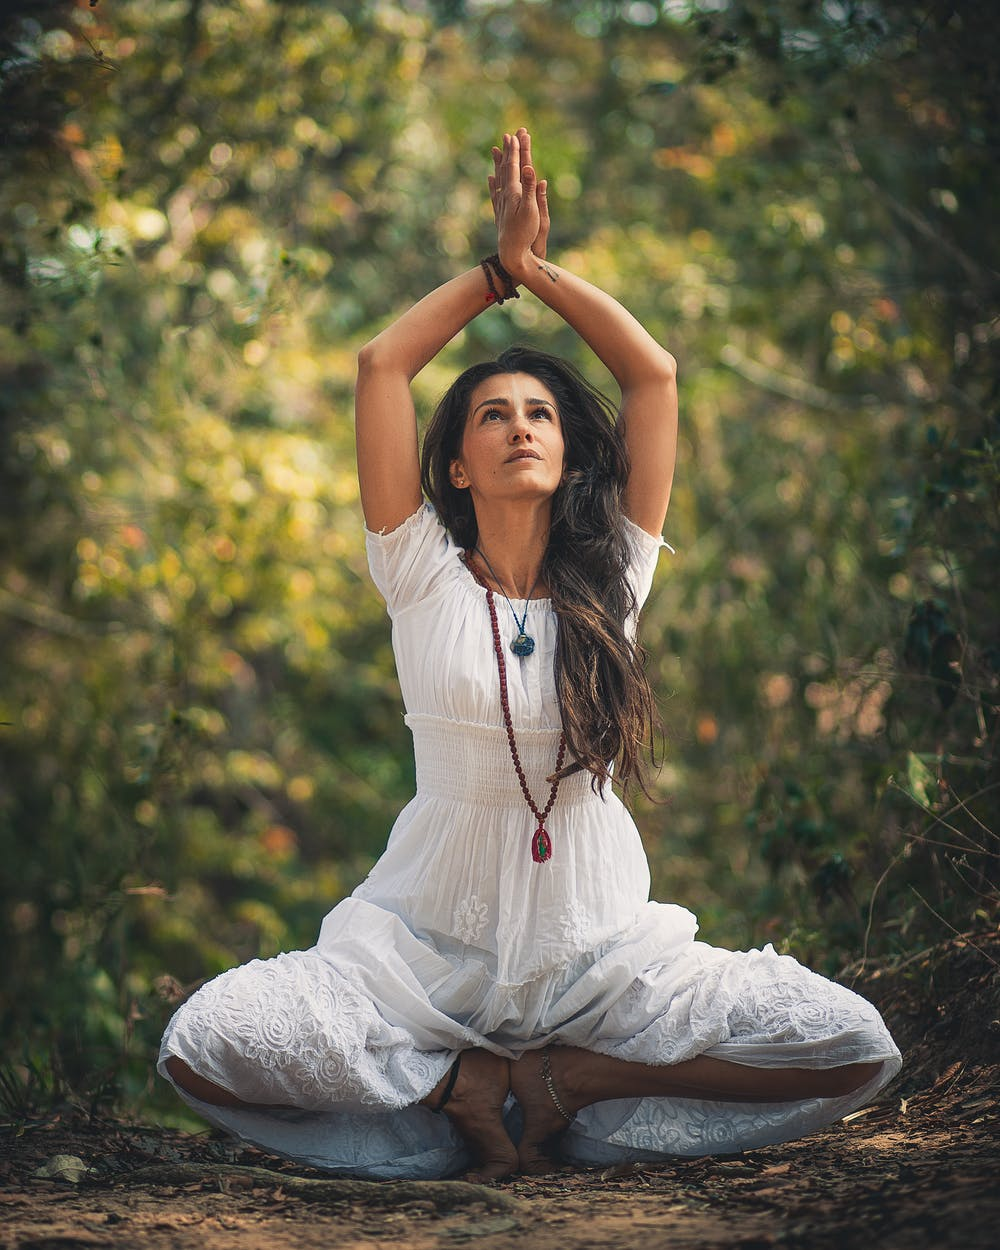 Find Best Yoga Philosophy Courses